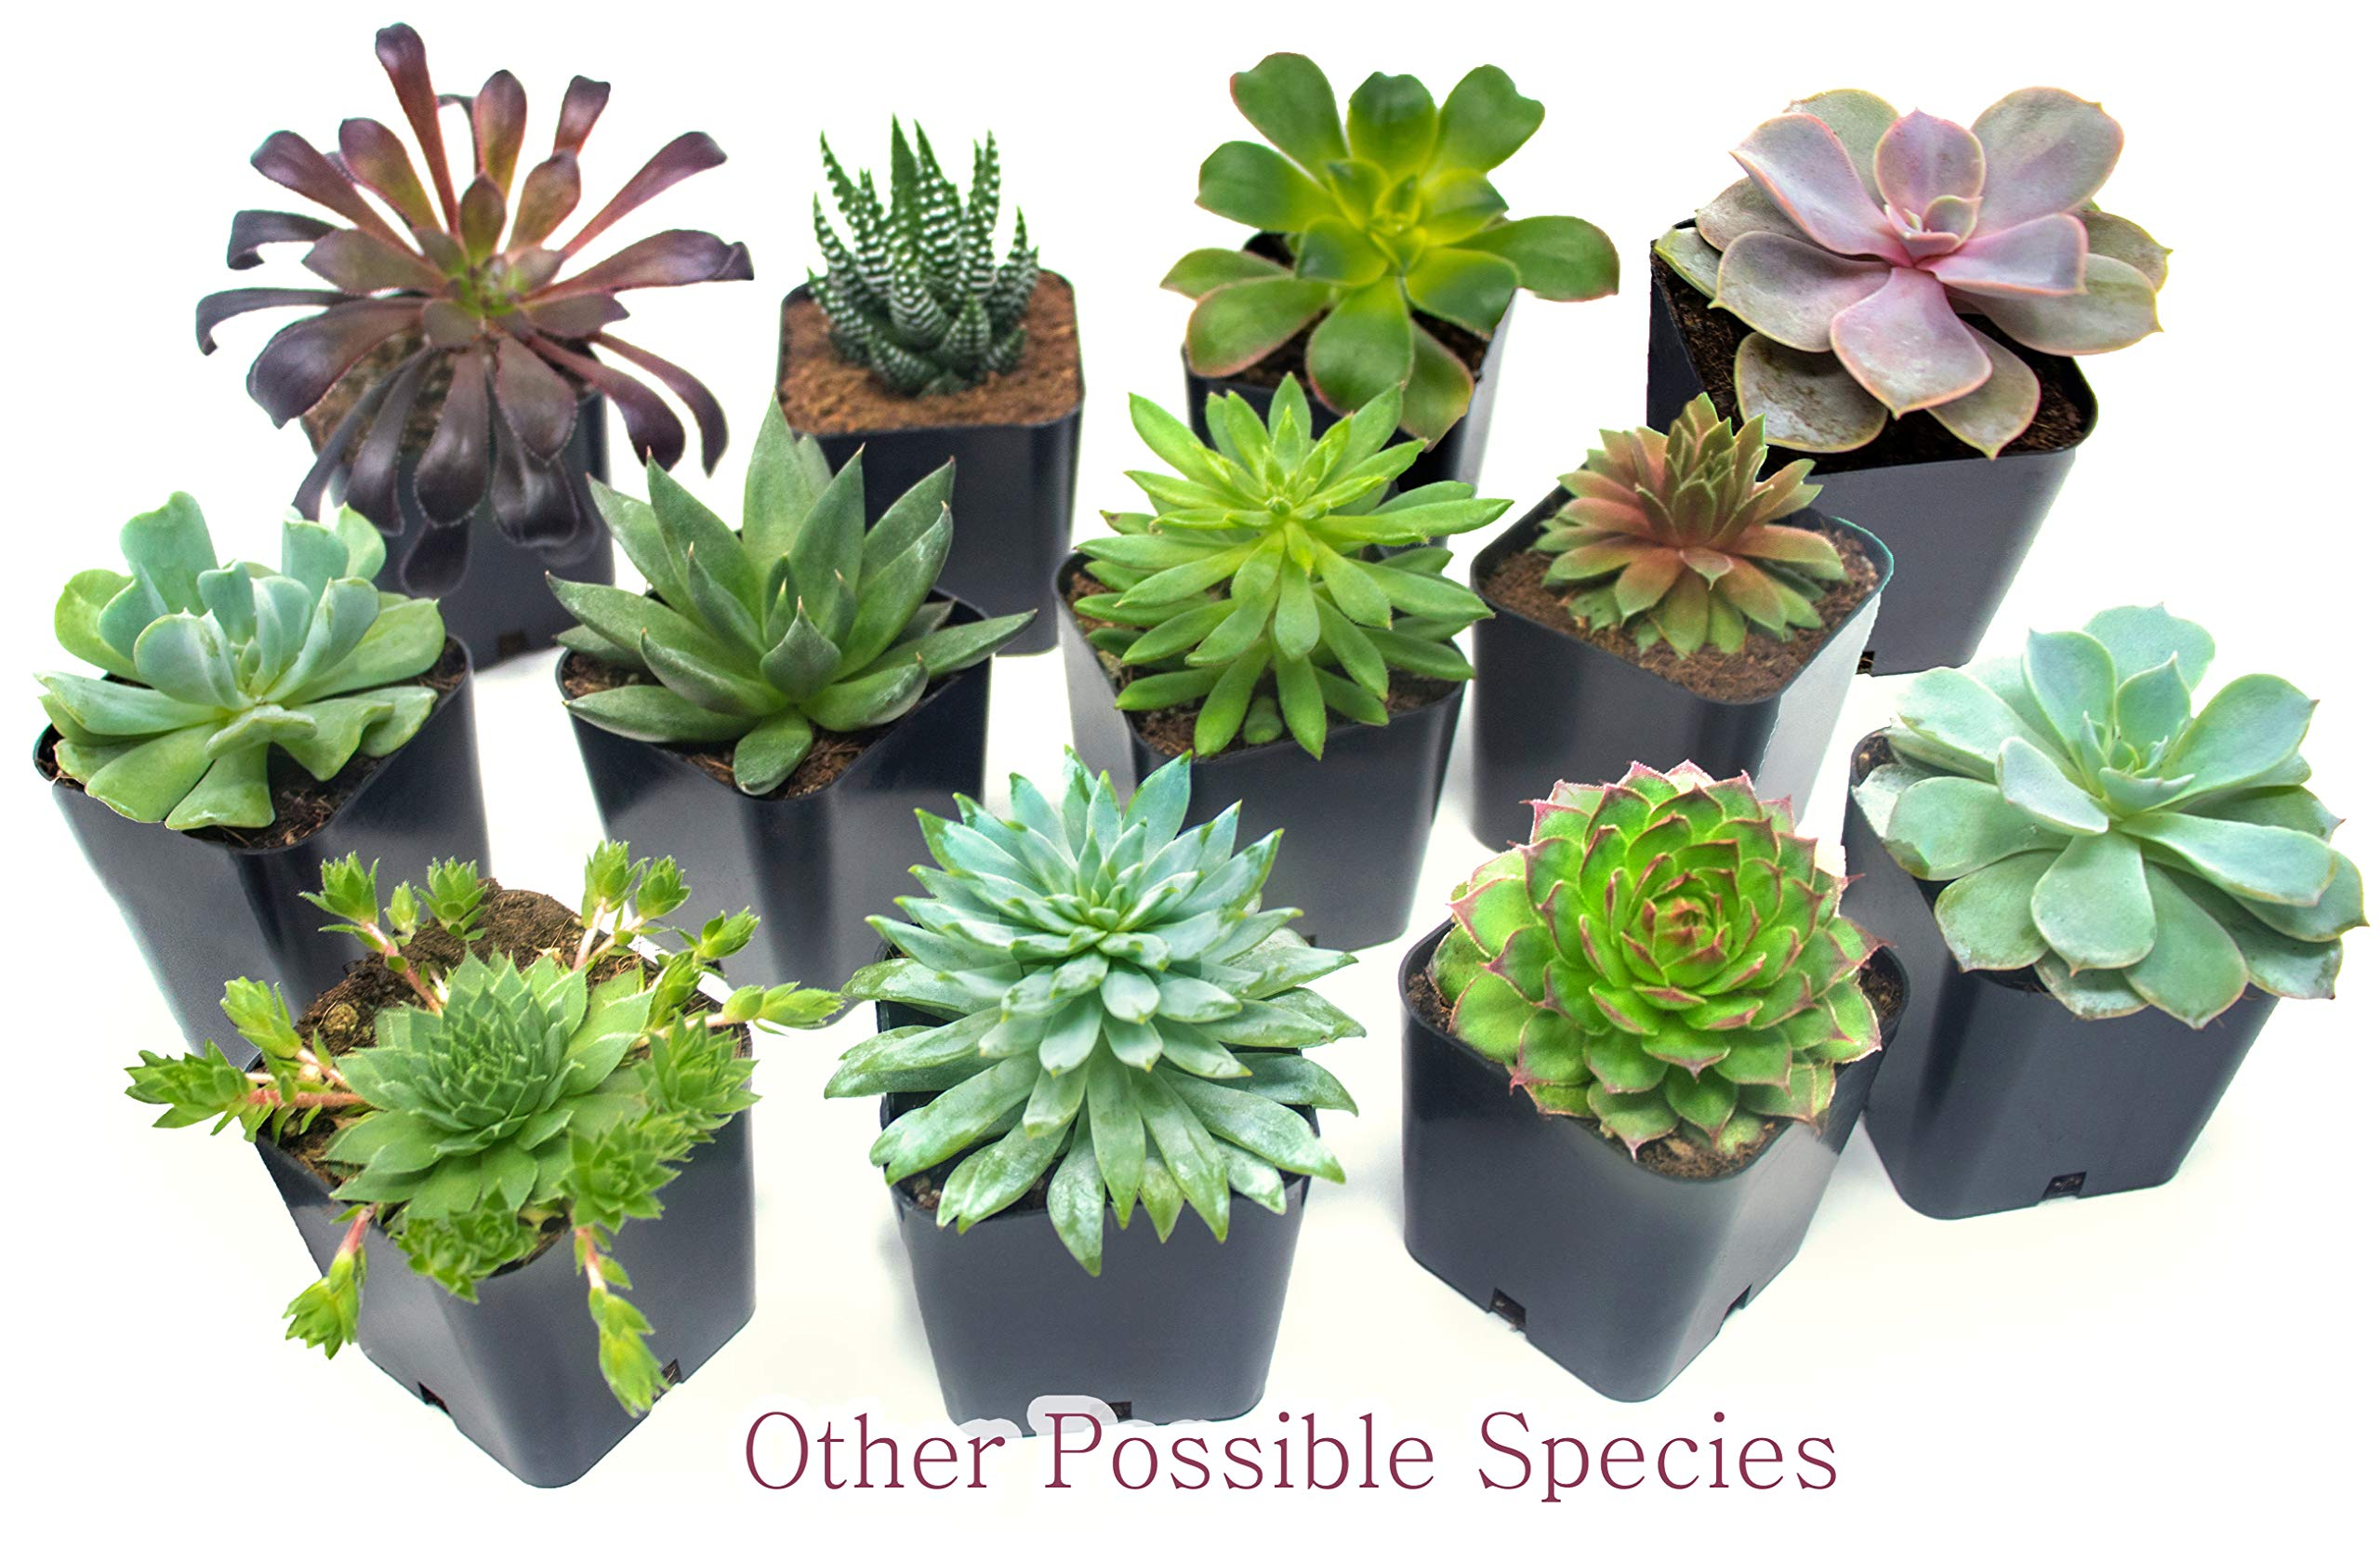 Succulent Plants (5 Pack), Fully Rooted in Planter Pots with Soil - Real Live Potted Succulents / Unique Indoor Cactus… 12 HAND SELECTED: Every pack of succulents we send is hand-picked. You will receive a unique collection of species that are FULLY ROOTED IN 2 INCH POTS, which will be similar to the product photos (see photo 2 for scale). Note that we rotate our nursery stock often, so the exact species we send changes every week. THE EASIEST HOUSE PLANTS: More appealing than artificial plastic or fake faux plants, and care is a cinch. If you think you can't keep houseplants alive, you're wrong; our succulents don't require fertilizer and can be planted in a decorative pot of your choice within seconds. DIY HOME DECOR: The possibilities are only limited by your imagination; display them in a plant holder, a wall mount, a geometric glass vase, or even in a live wreath. Because of their amazingly low care requirements, they can even make the perfect desk centerpiece for your office.